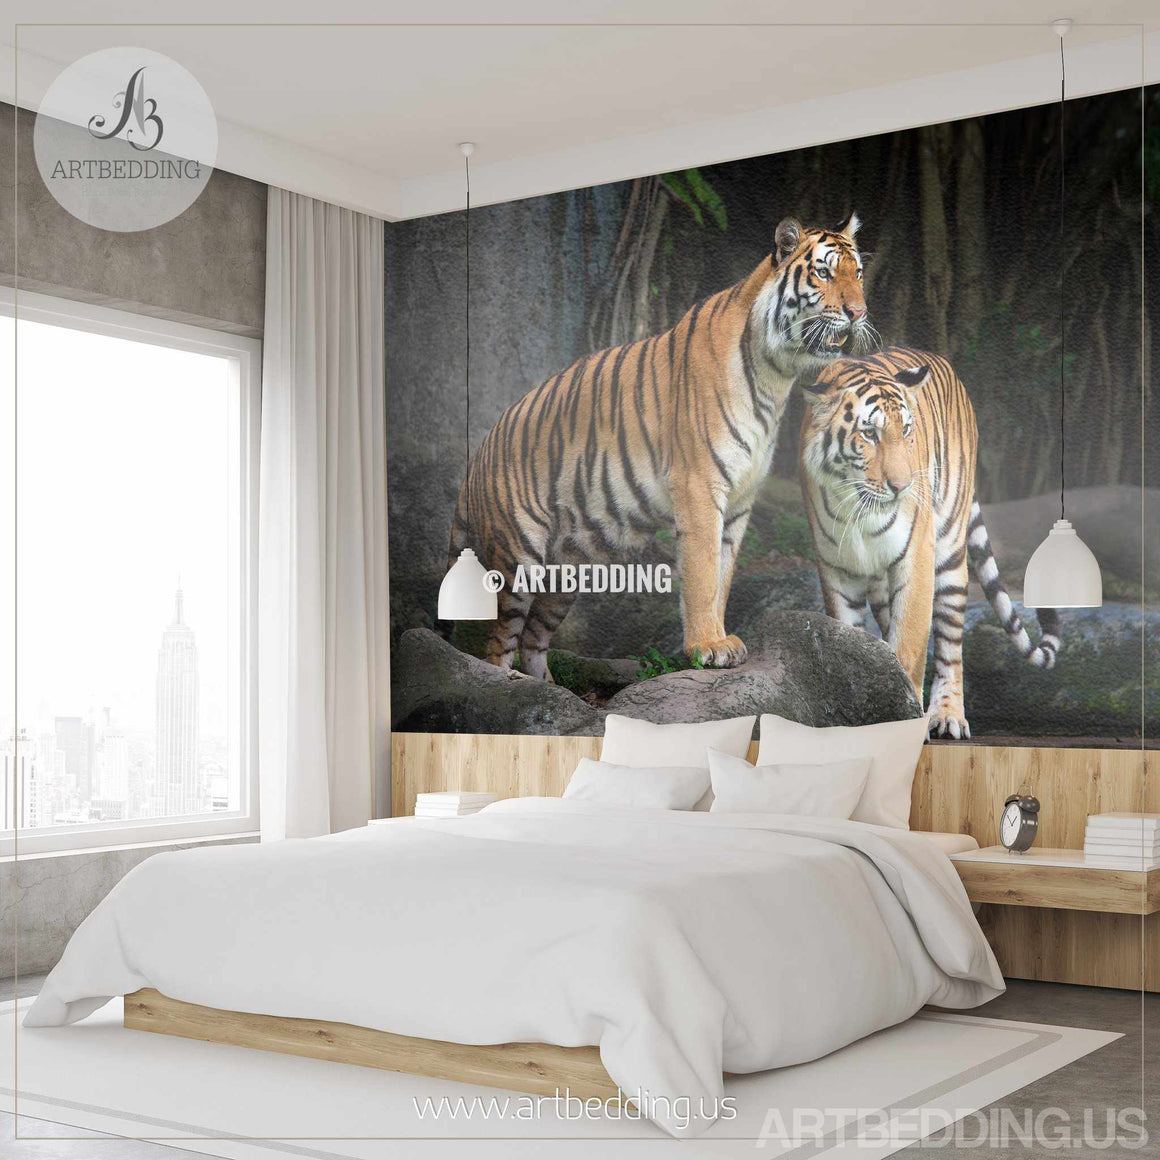 Tigers Wall Mural, Wild tiger Self Adhesive Peel & Stick Photo Mural, African tigers wallpapers wall mural